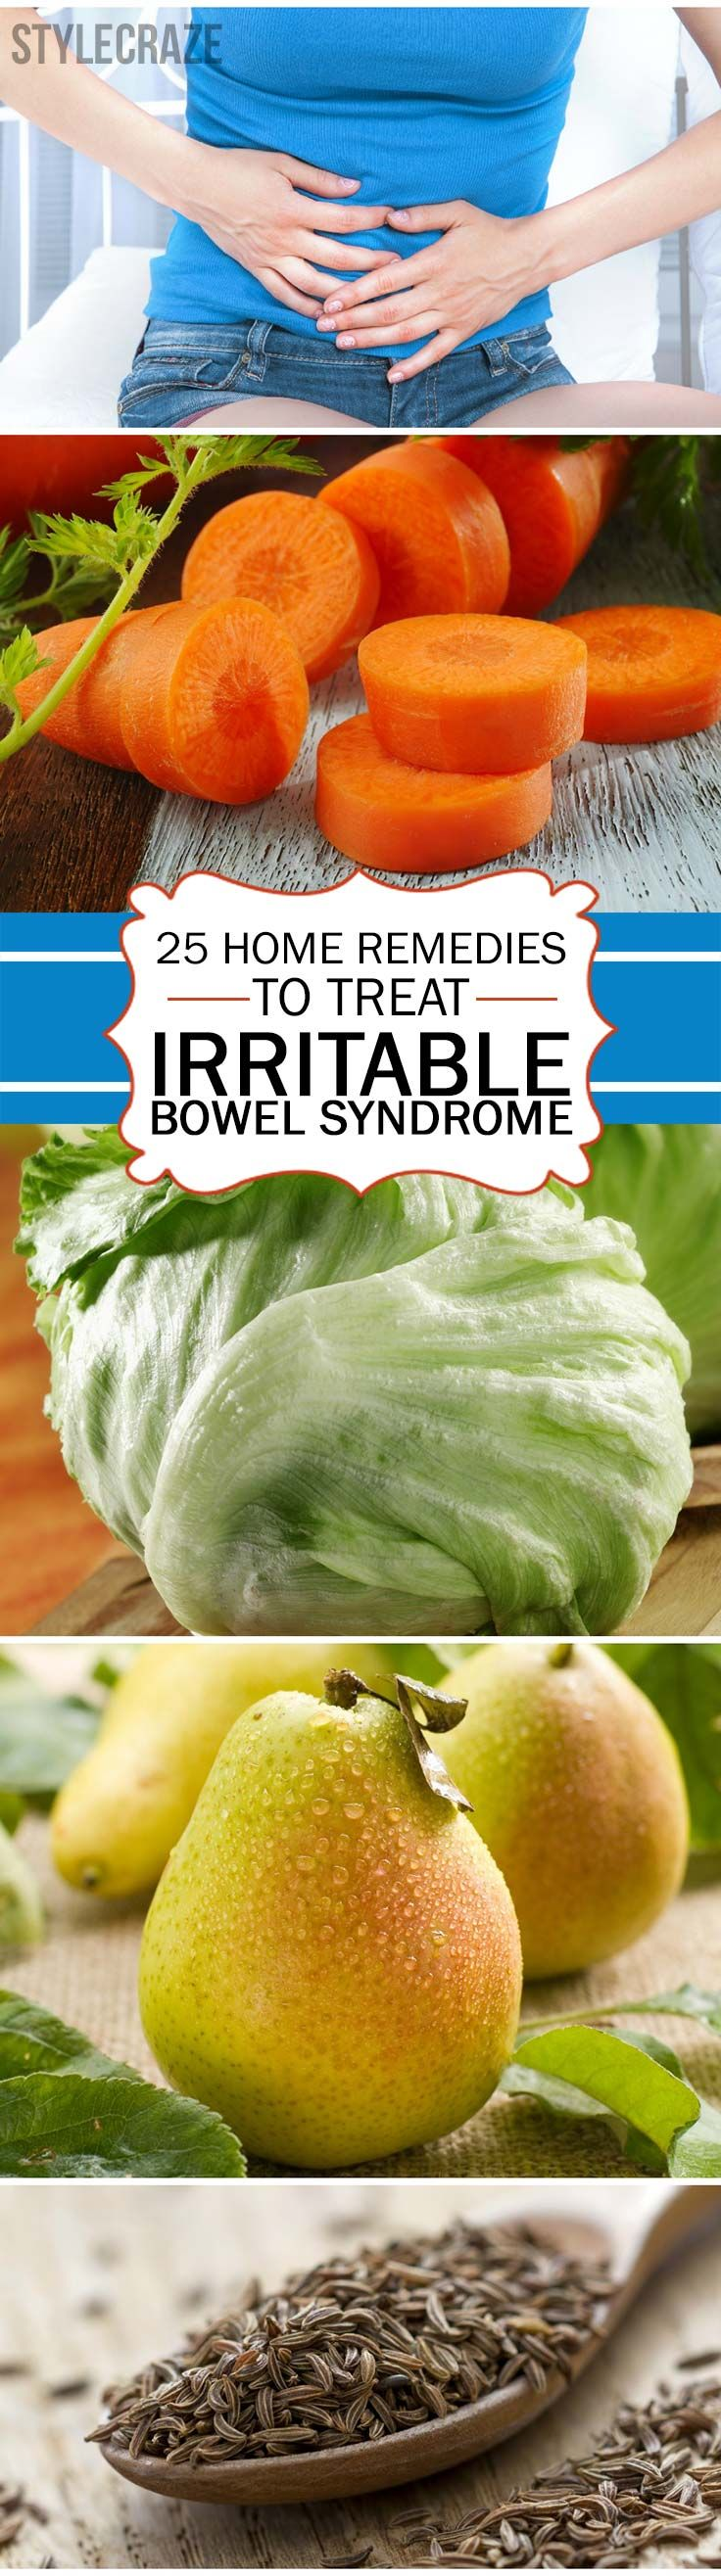 With the kind of food we consume and the environment we live in, abdominal problems have become common. But irritable bowel syndrome? How common can it get? Here is all you need to know about it